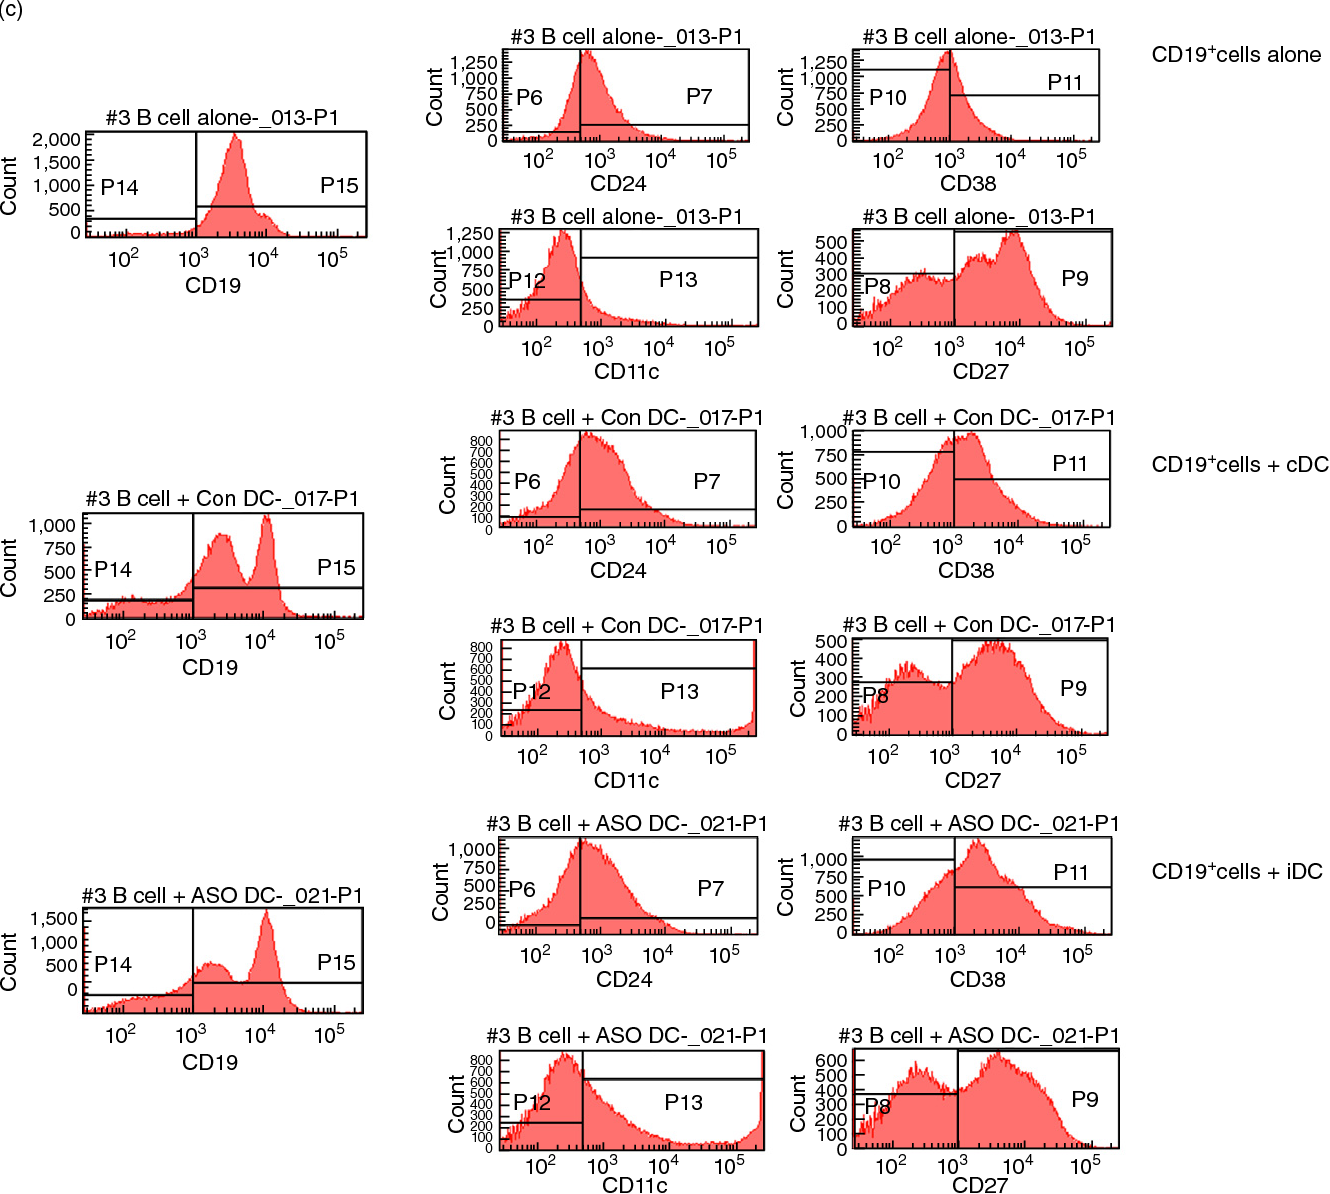 Fig. 2. The frequency and absolute cell numbers of suppressive B cells is increased in co-culture with control DC (cDC) and immunosuppressive DC (iDC) in vitro. (a) Flow cytometry was conducted as shown. The frequency of human suppressive B cells (CD19+CD24+CD38+CD27+/–) measured after a 2-day co-culture of thawed normal human donor peripheral blood mononuclear cells (PBMC) with autologous cDC or iDC generated from the same PBMC donor. The quadrant plots at the top of the figure show the frequency of CD19+CD11c– cells as a percentage of total viable cells in culture. The quadrant plots in the lower middle of the figure show the CD24+CD38+/intermediate cell frequency as a percentage of CD19+CD11c– cells. The quadrant plots and histograms at the bottom serve to distinguish whether the differences in the frequencies of the B cells analysed in the preceding quadrants are due to changes in the expression of single surface molecules (CD27) or to proliferative/differentiation events [5-bromo-2-deoxyuridine (BrdU)+] in response to provision of the DC in the co-culture. These data are representative of the outcome of triplicate co-cultures on at least two independent occasions using PBMC from two unrelated healthy adults. The events coloured green represent the CD38+CD24+ cells inside the CD19+CD11c– parental population. The events in yellow represent the BrdU+ cells and the events in light blue represent the CD27+ cells. (b) A graphical summary of the frequency (upper graphs) and the absolute number (lower graphs) of CD19+CD24+CD38+CD11c– B cells detected in 2- day co-cultures of freshly collected PBMC and control DC (cDC) or immunosuppressive DC (iDC). The graphs at the top summarize the frequency of proliferative (BrdU) cells as a percentage of CD19+CD24+CD38+CD11c– B cells (top left) and as a percentage of CD27+CD19+CD24+CD38+CD11c– B cells (top right). The graphs at the bottom summarize the absolute cell numbers of CD19+CD24+CD38+CD11c– B cells (bottom left) and of CD27